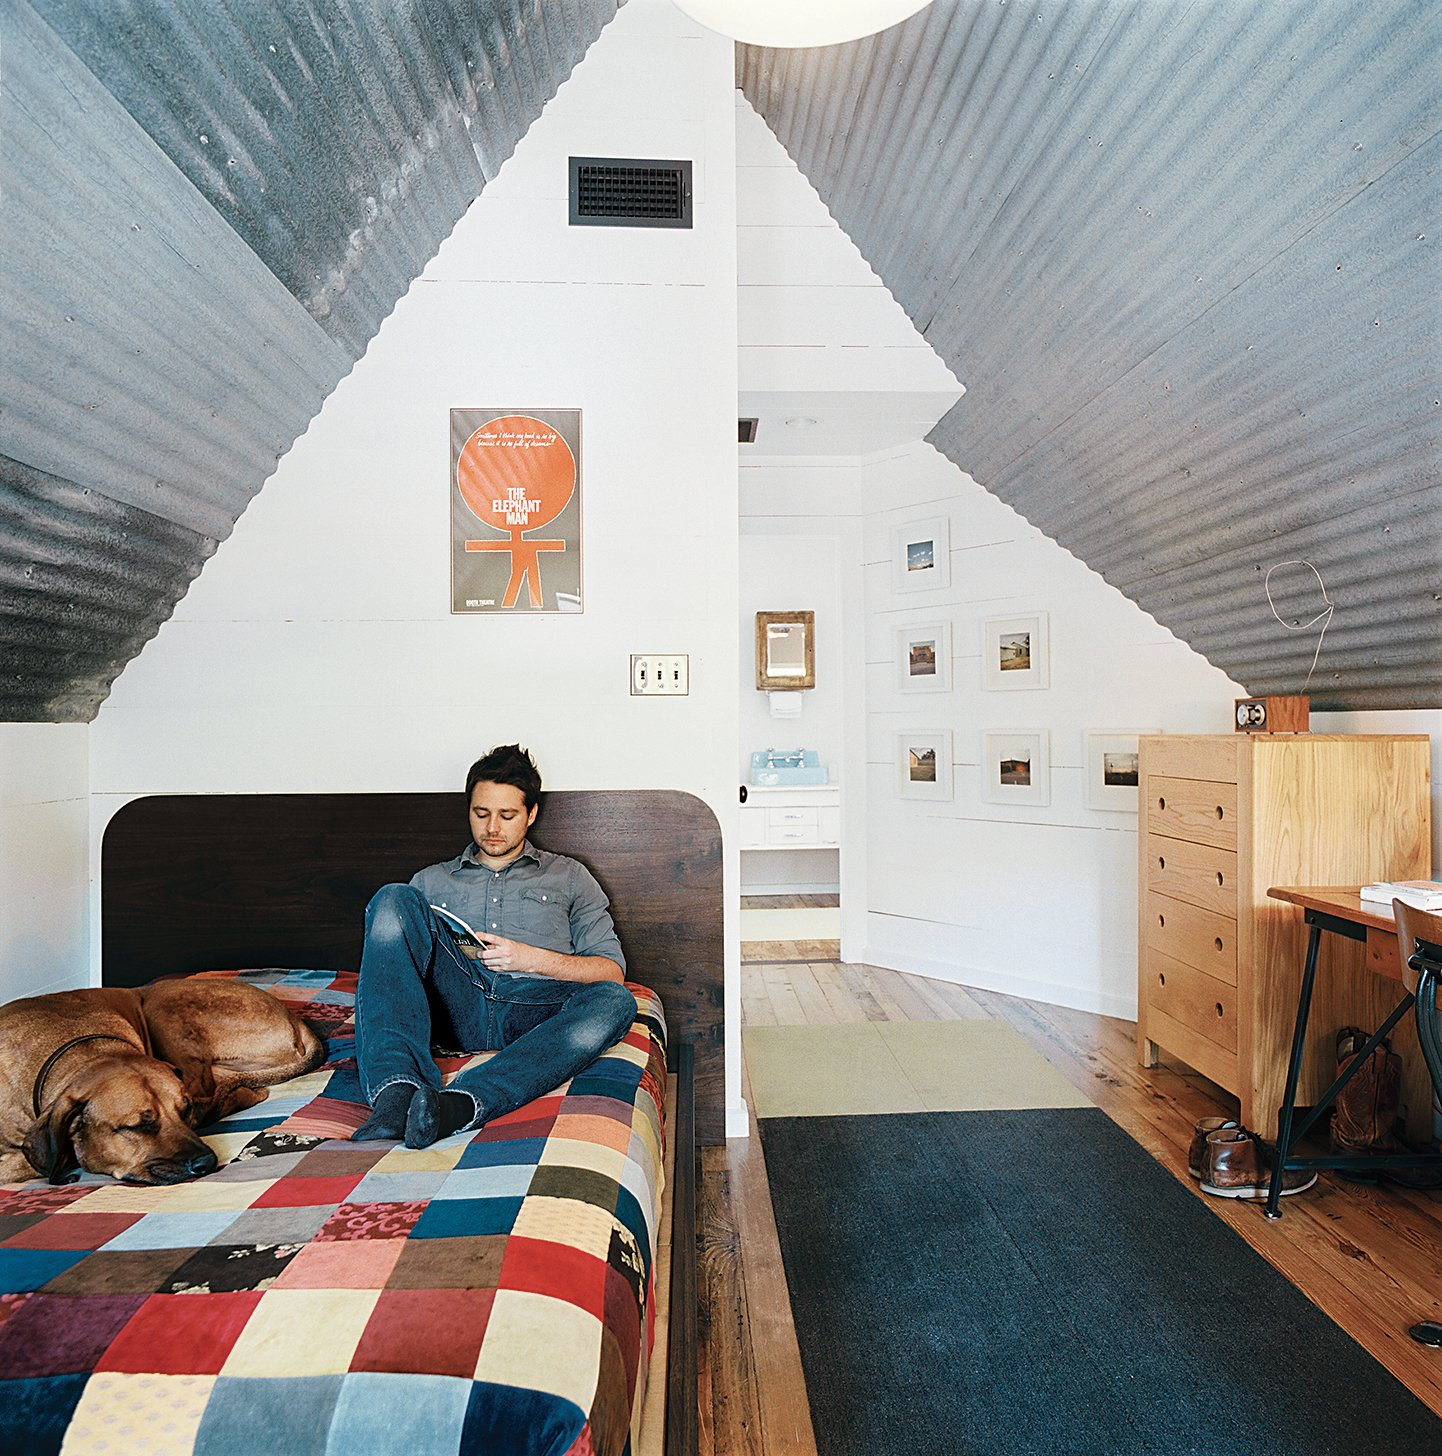 The bedroom takes up the small second floor of the house.  Bedrooms by Dwell from Salvage Love